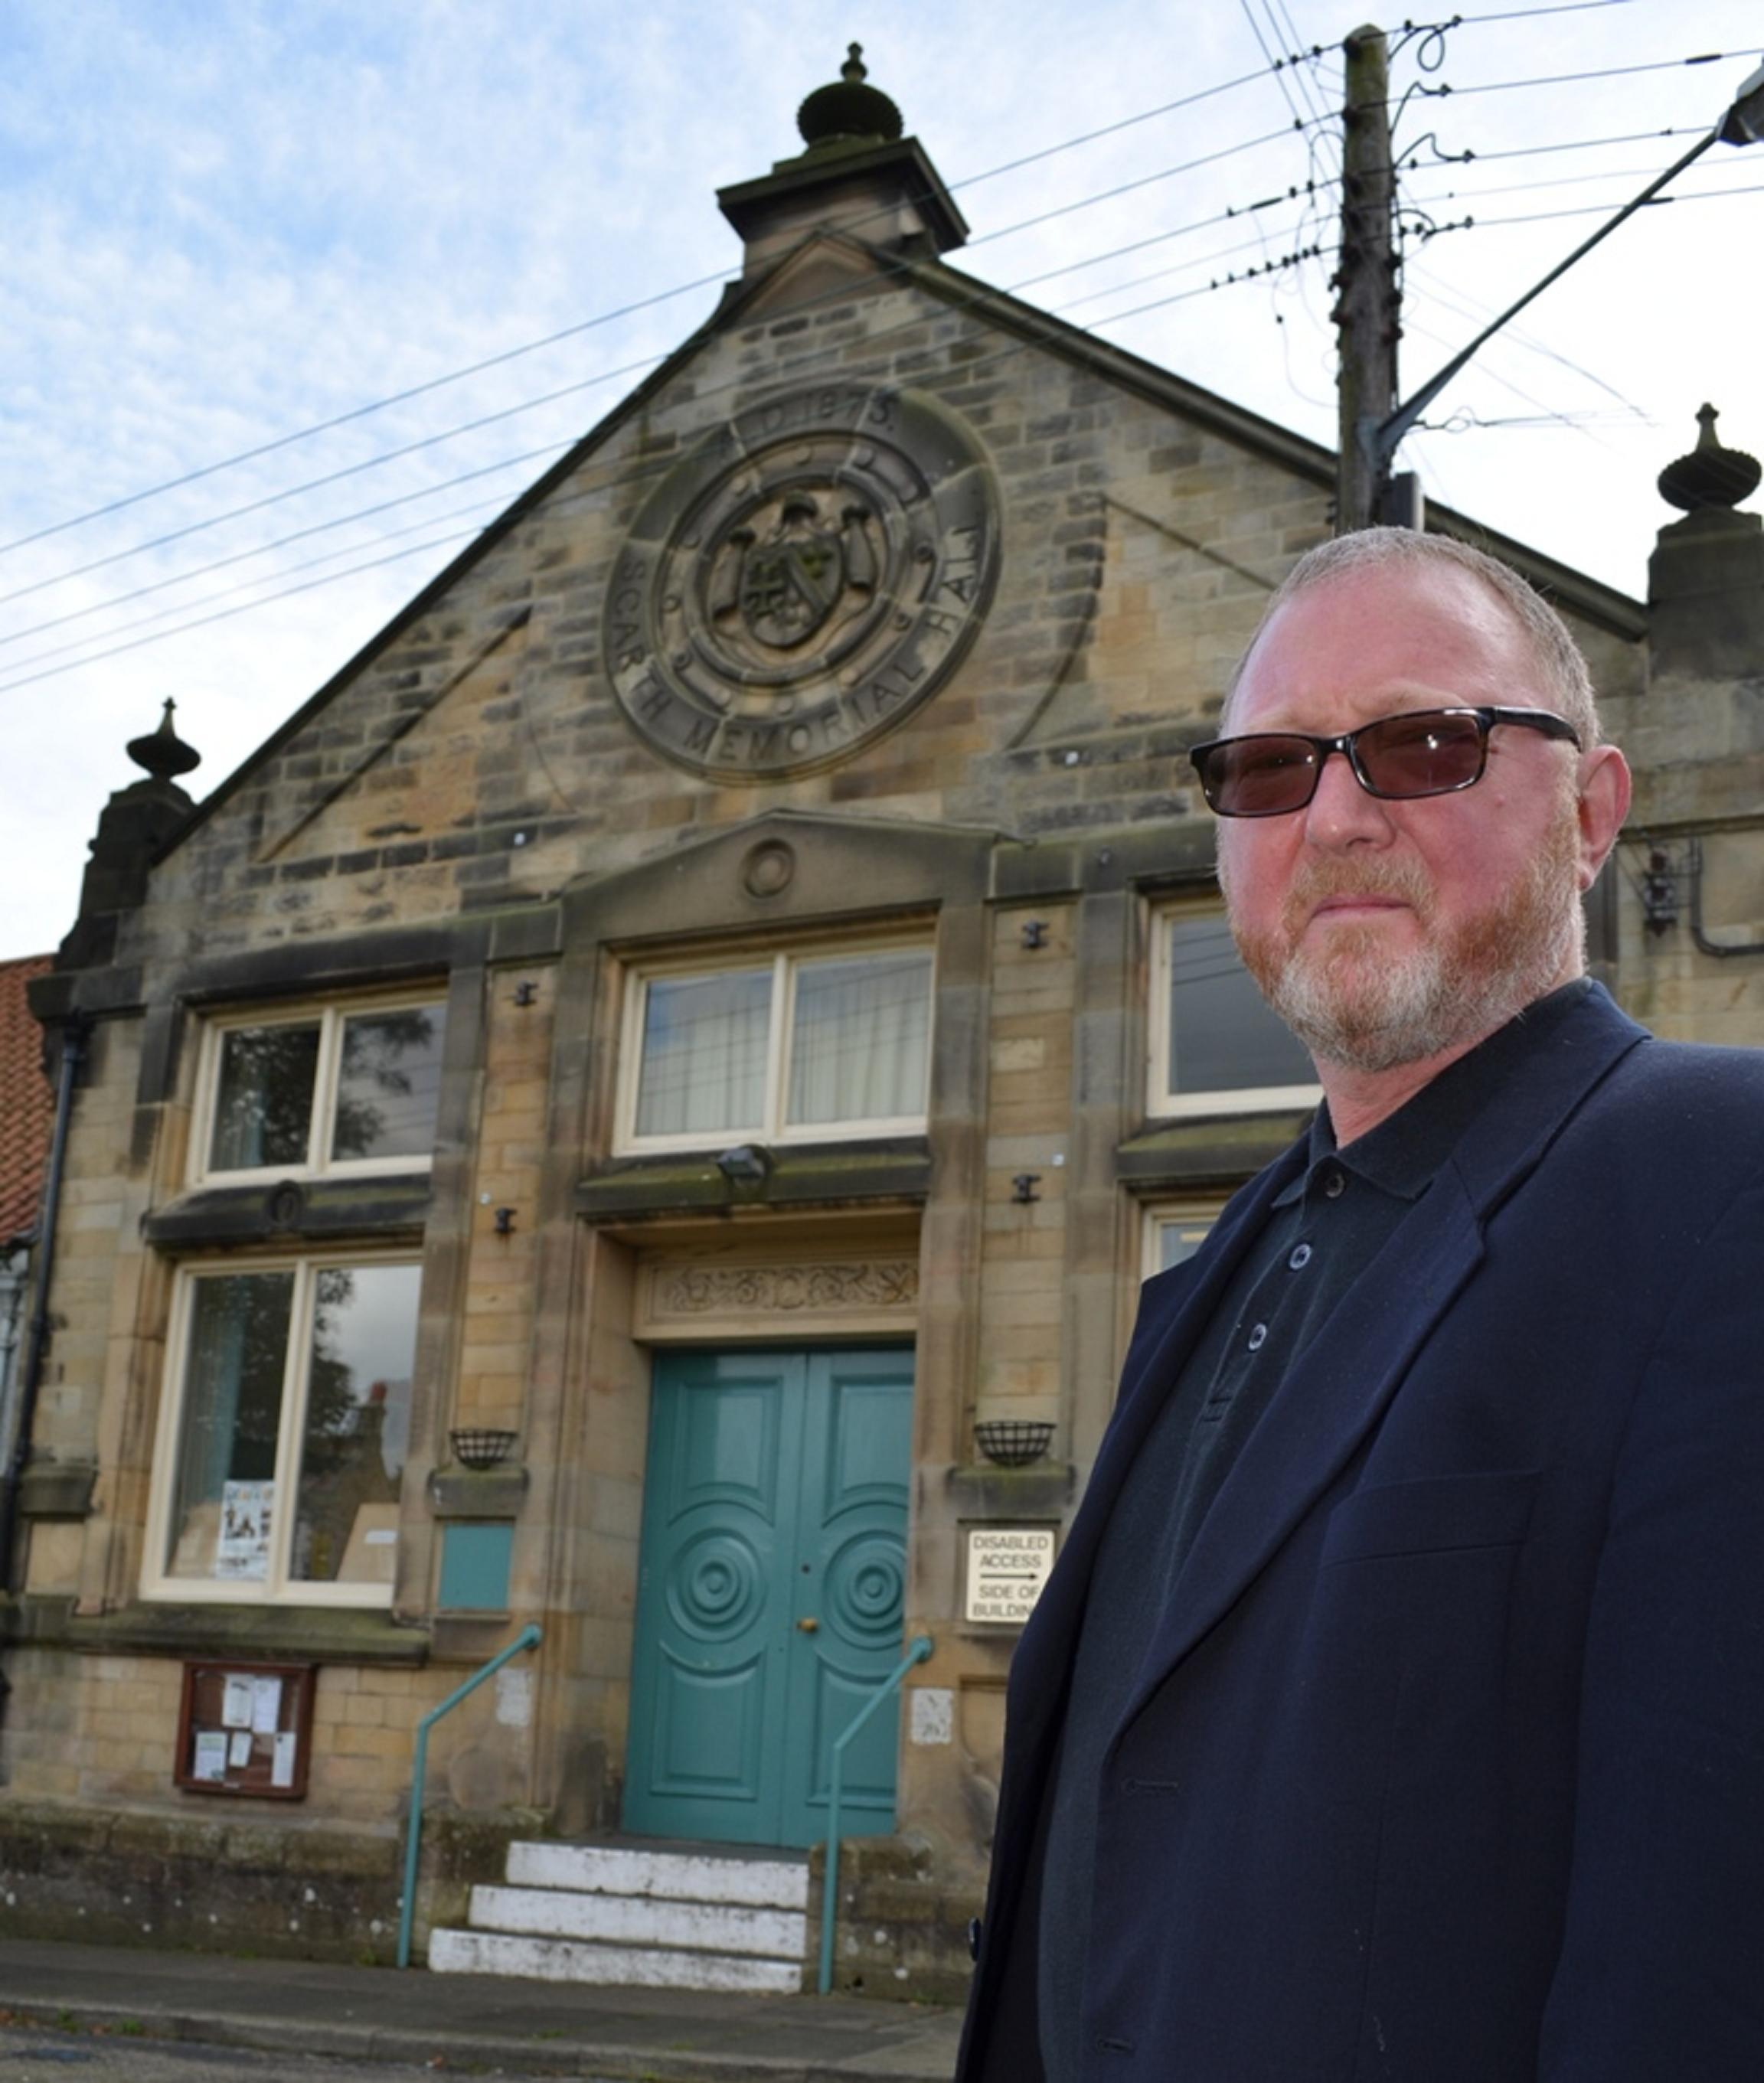 Morris Race, chairman of the trustees of Scarth Memorial Hall in Staindrop, outside the 19th century community building in Staindrop